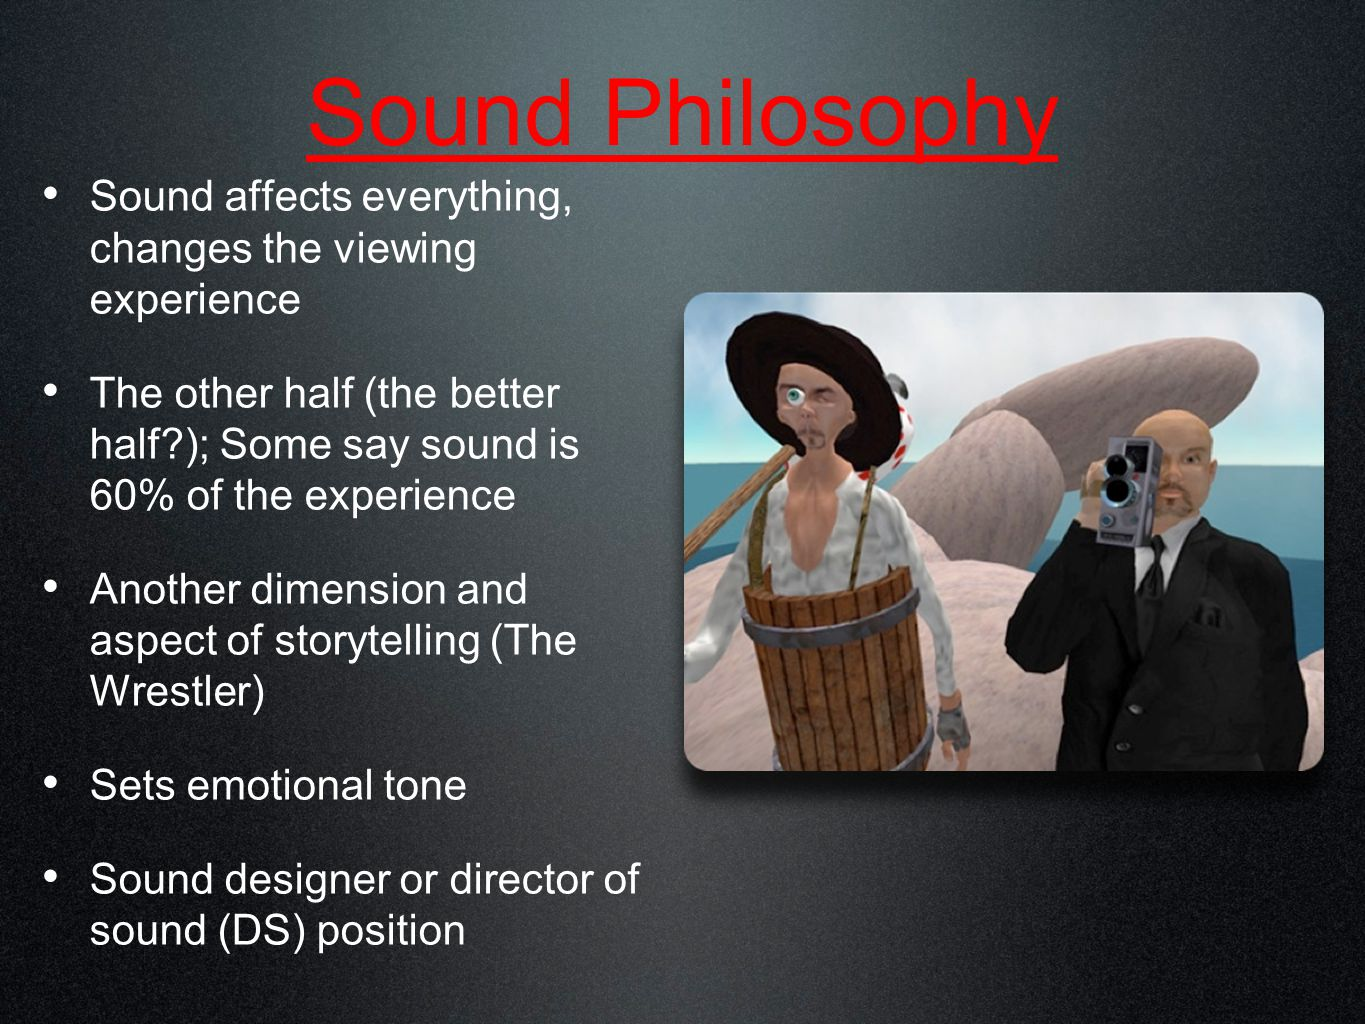 2 Philosophies Aims for realism Music fits the mood--Star Wars, Gone With the Wind, Top Gun, Gladiator--Howard Shore, John Williams; Wagner's Flight of the Valkyries in Apocalypse Now Sound effects reflect the 'reality' of the film We hear what we expect...